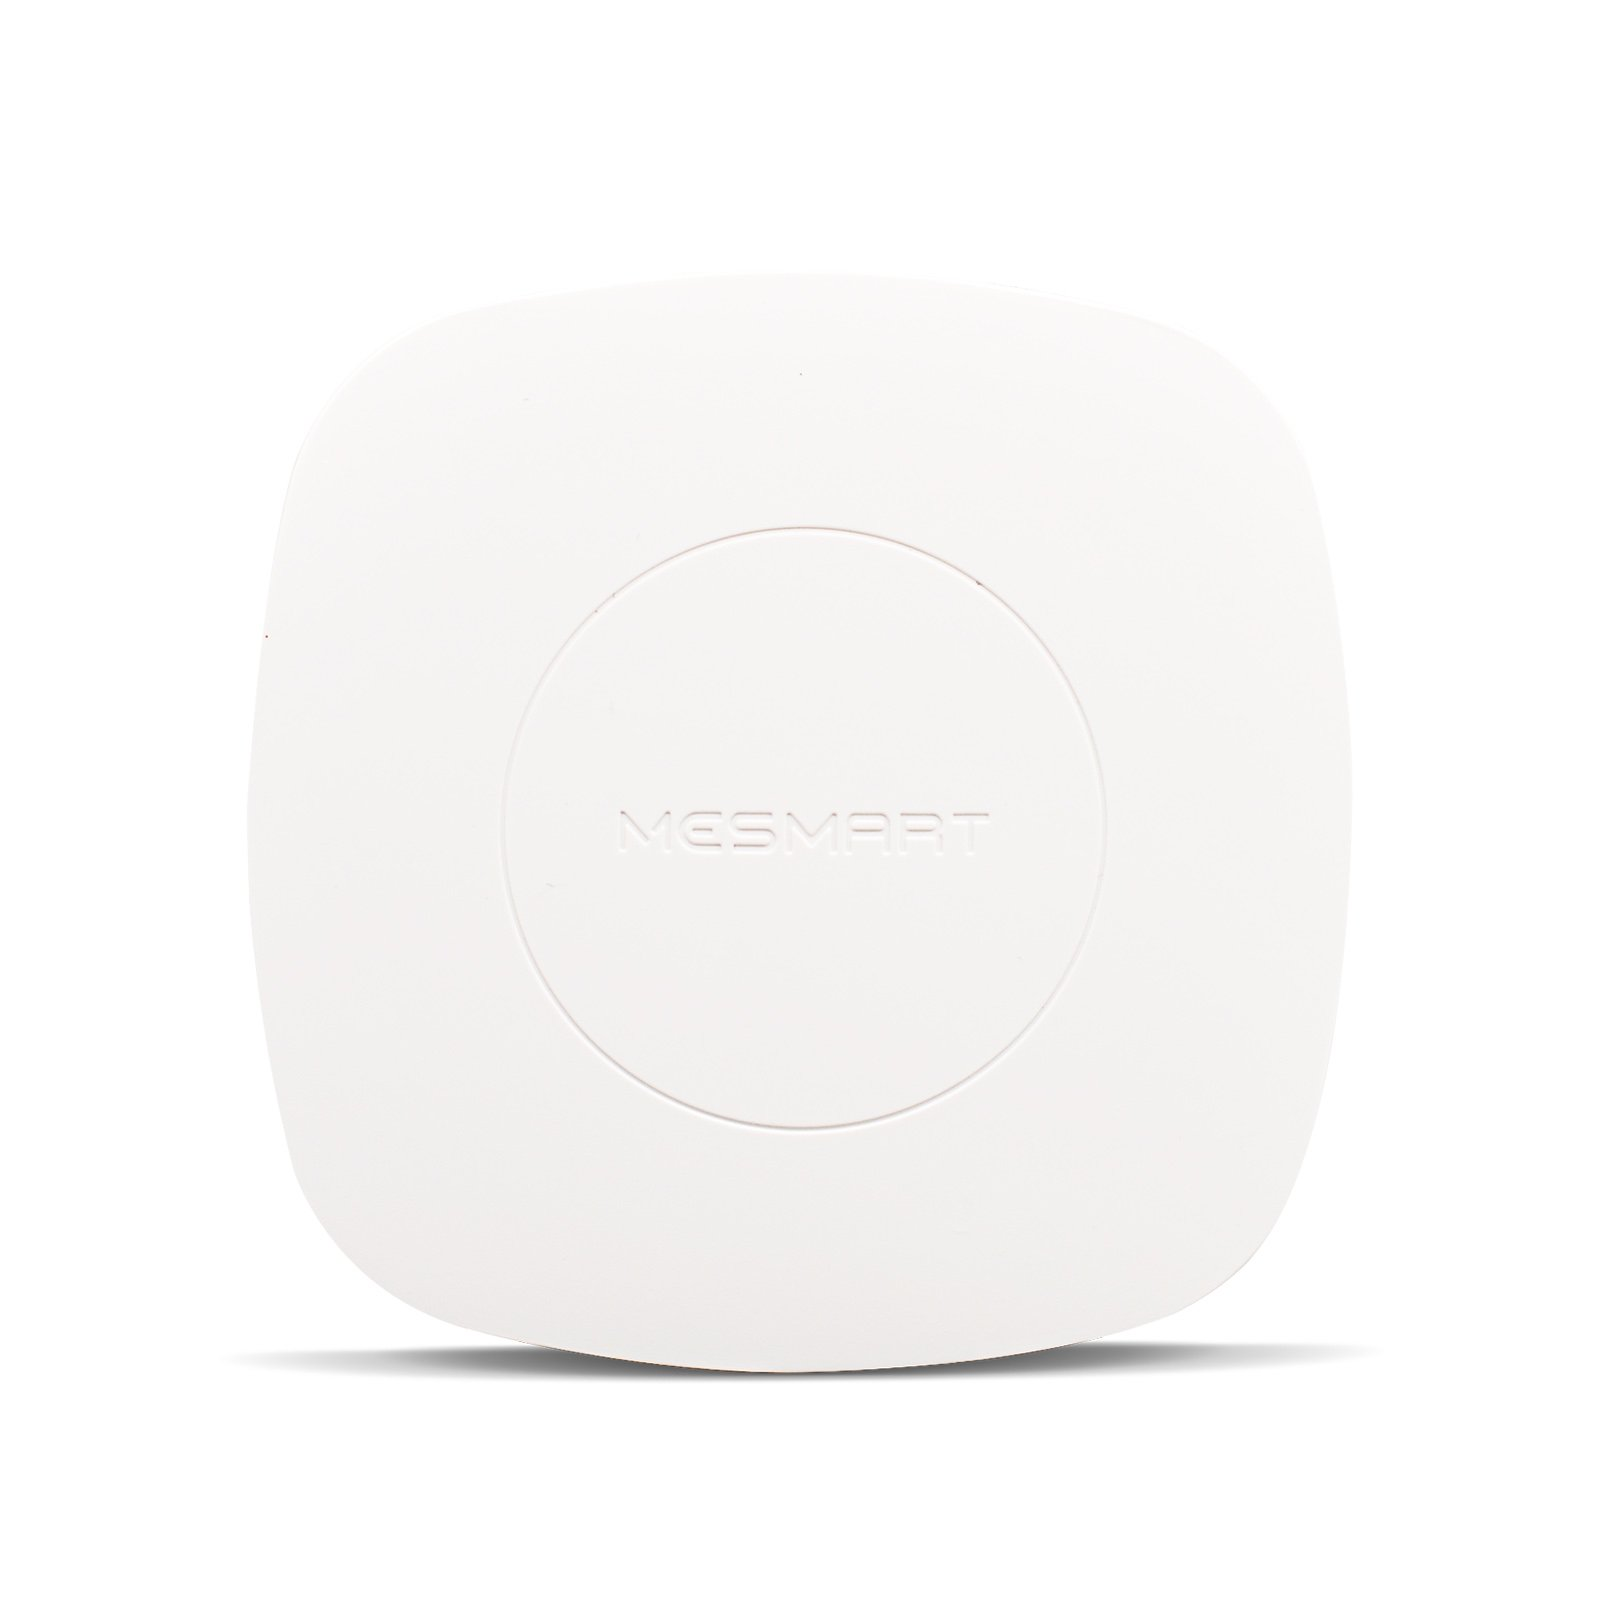 MESMART Wireless Connected Smart Home Hub Controller Secuirty Automation System Brain Center Zigbee Compatible with Amazon Alexa by MESMART (Image #3)